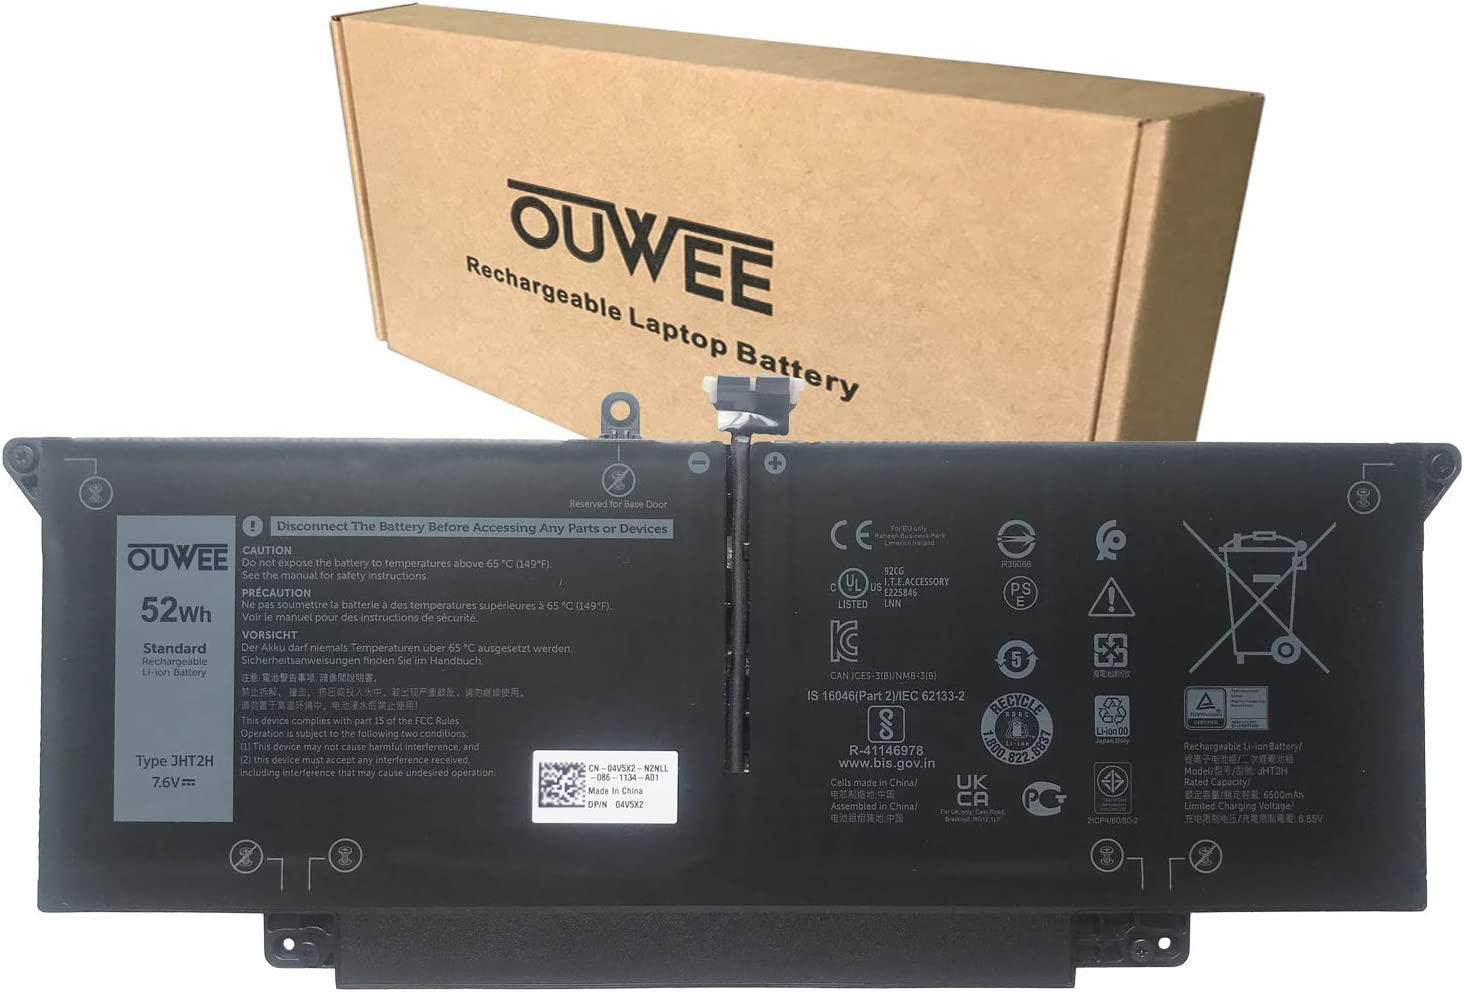 OUWEE JHT2H Laptop Battery Compatible with Dell Latitude 7310 7410 Series Notebook 04V5X2 0HRGYV Y7HR3 0WY9MP 7.6V 52Wh 6500mAh